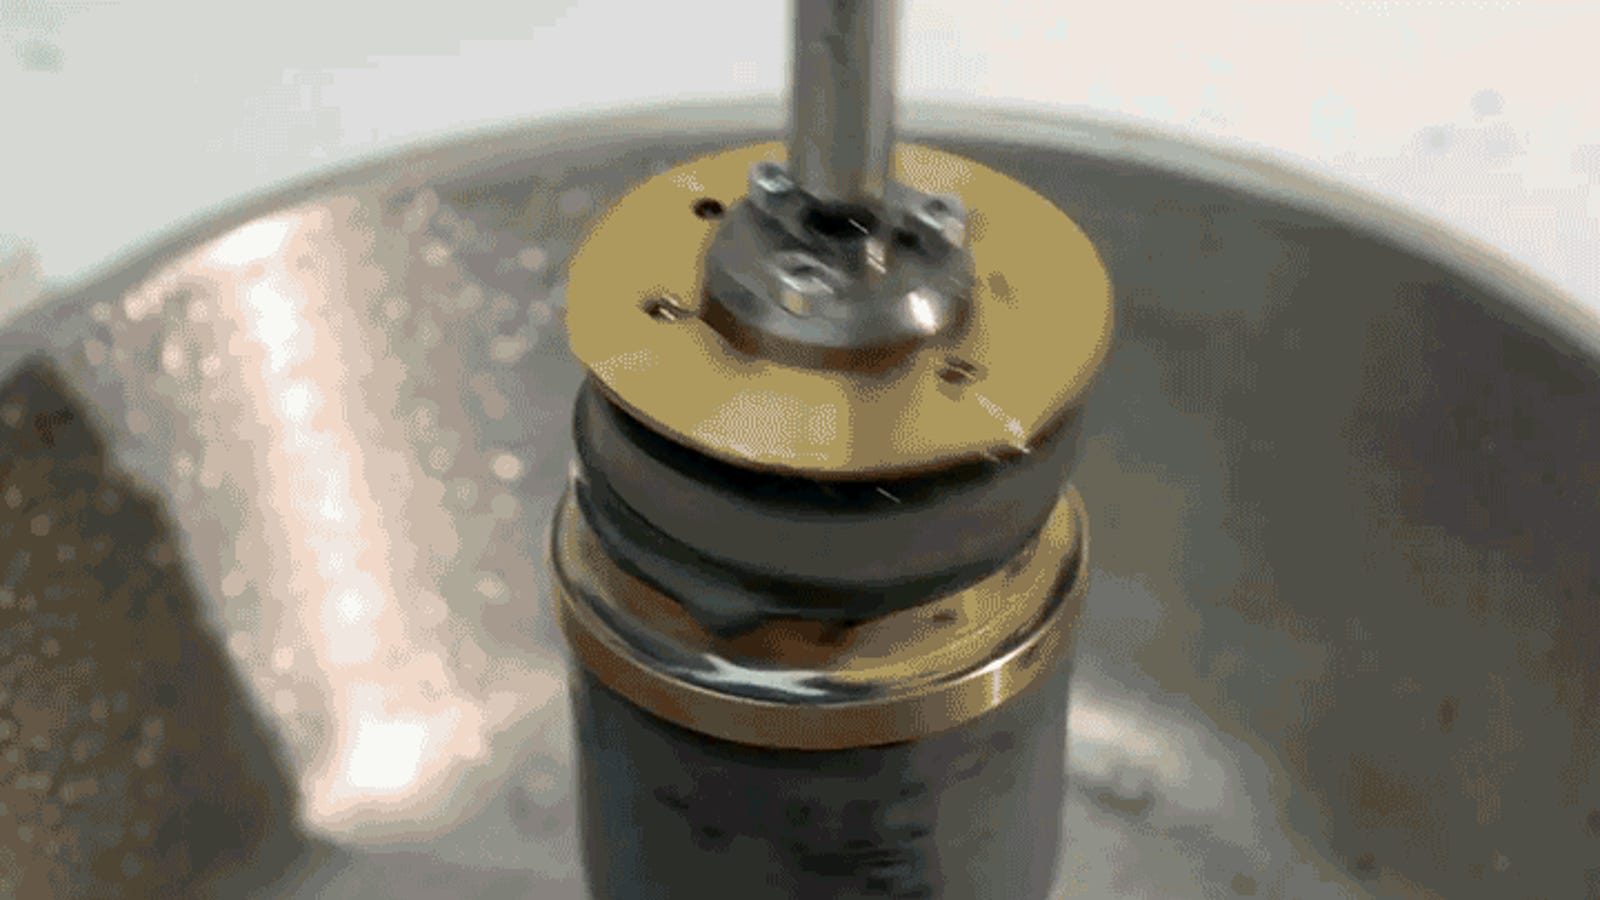 Watching Someone Make a Camera Lens From Scratch Explains Why No One Makes Camera Lenses From Scratch